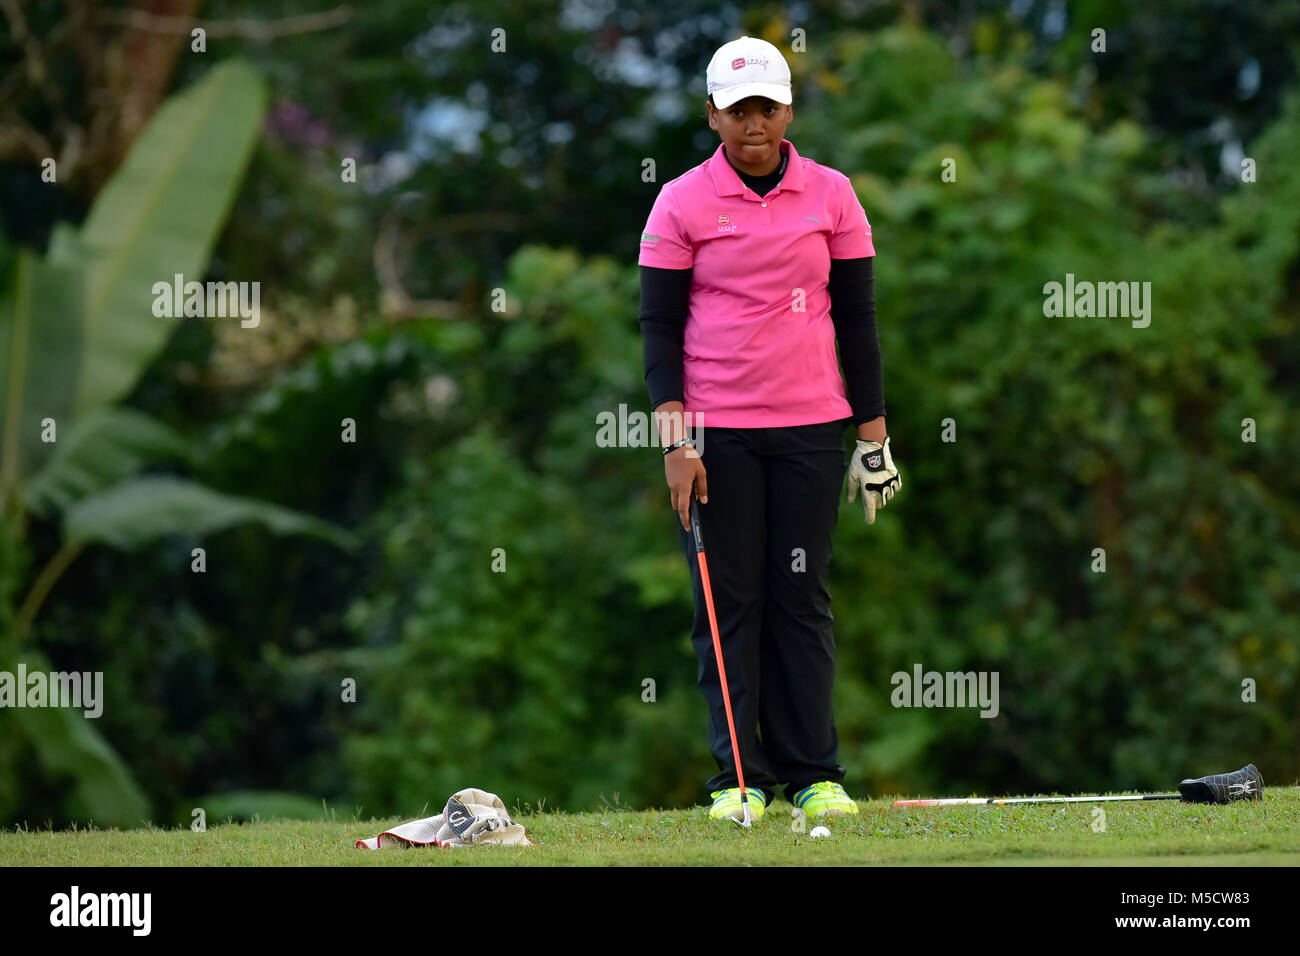 Danau, UKM Bangi - FEBRUARY 10: Zarith Sofea looks on from the 11th green during Round One of the Danau Junior Championship - Stock Image